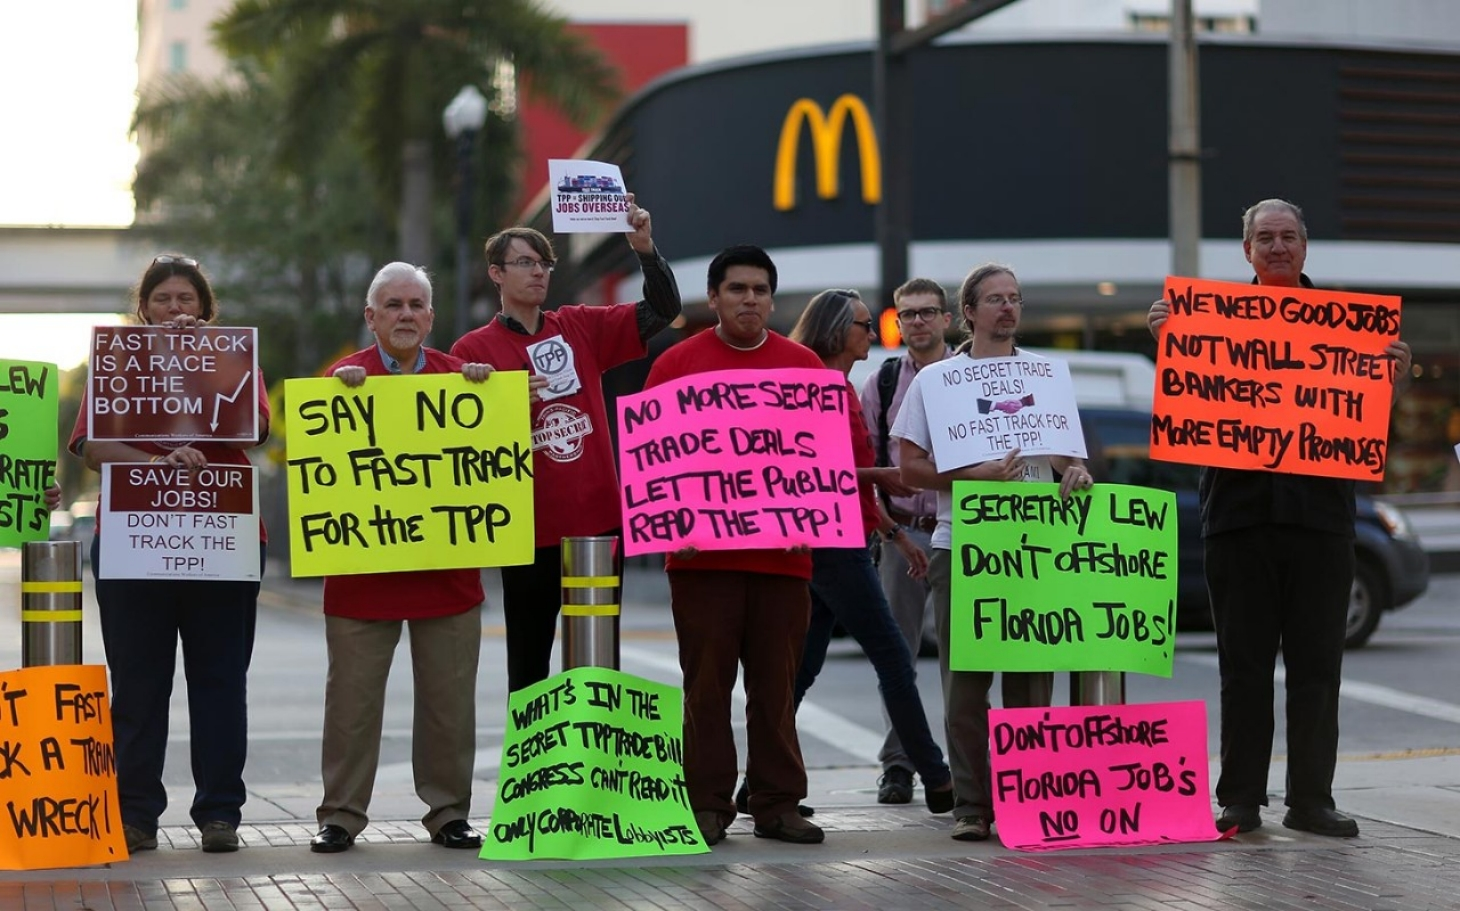 Liberal Allies Of Obama Hell No To Tpp Deal Al Jazeera America